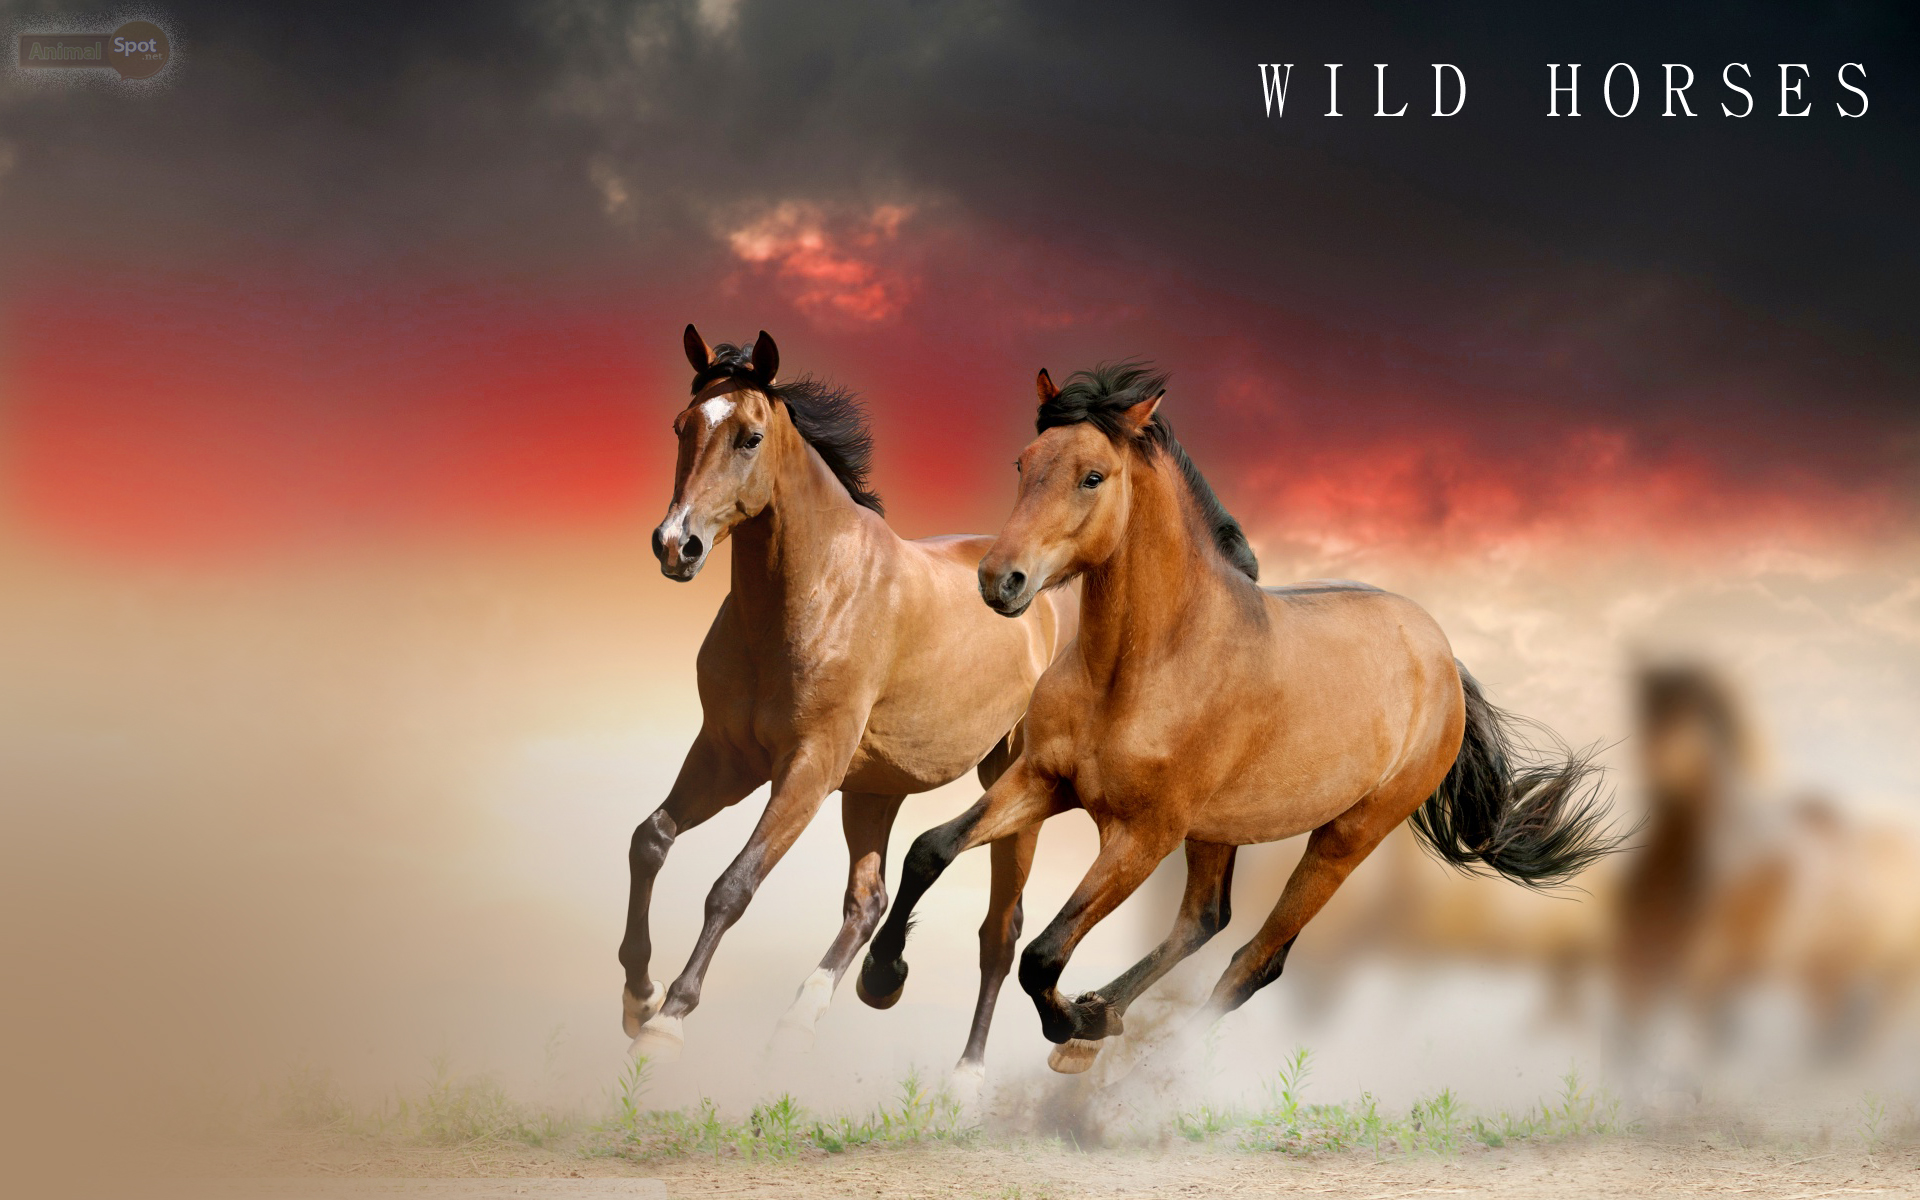 Horse Wallpapers Animal Spot HD Wallpapers Download Free Images Wallpaper [1000image.com]